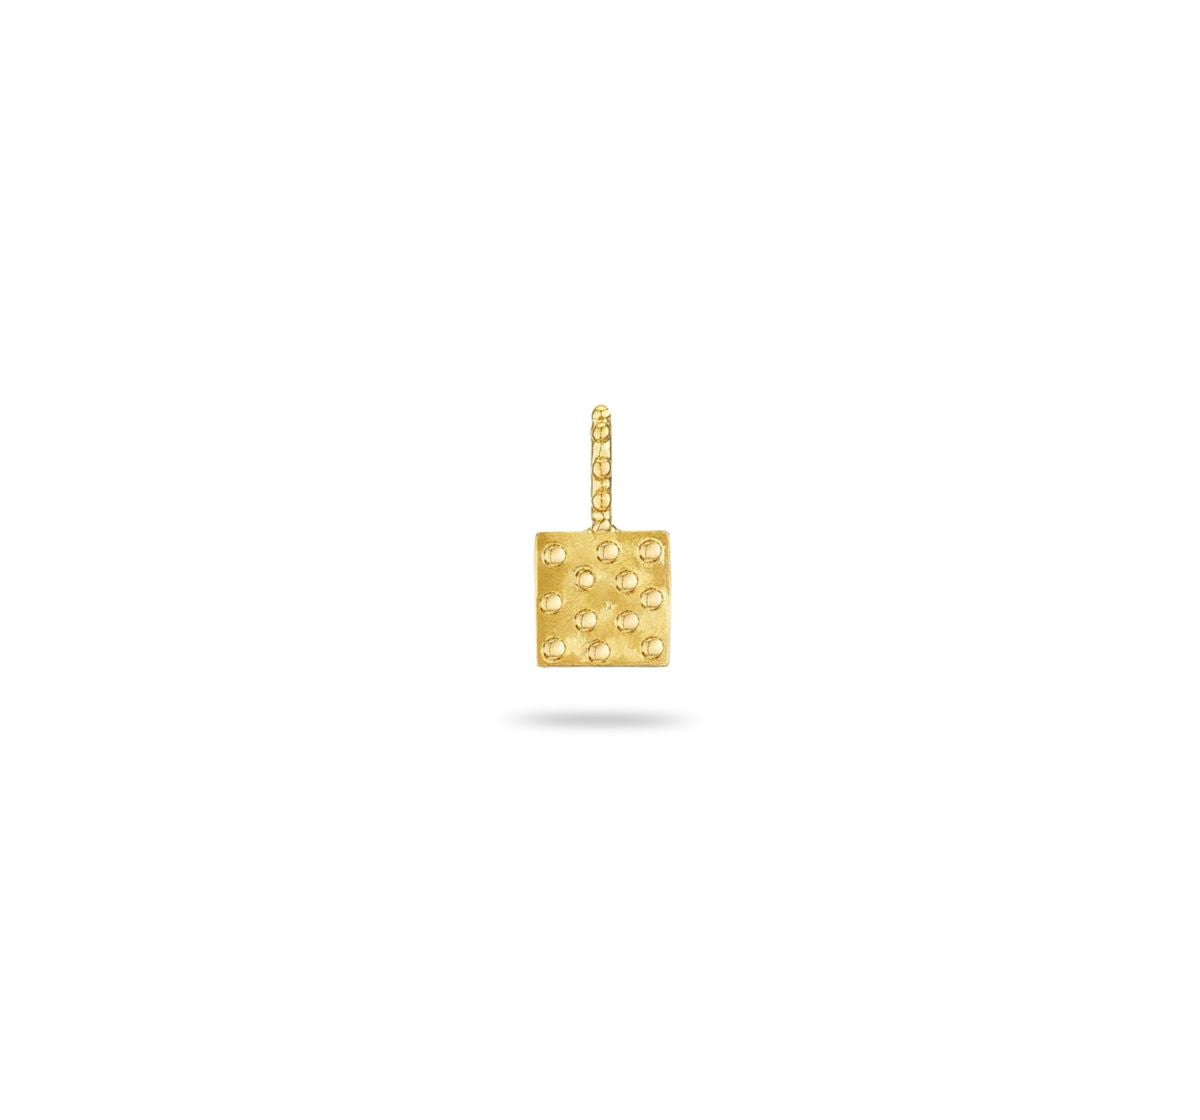 The Square Mini Symbol of Life Pendant